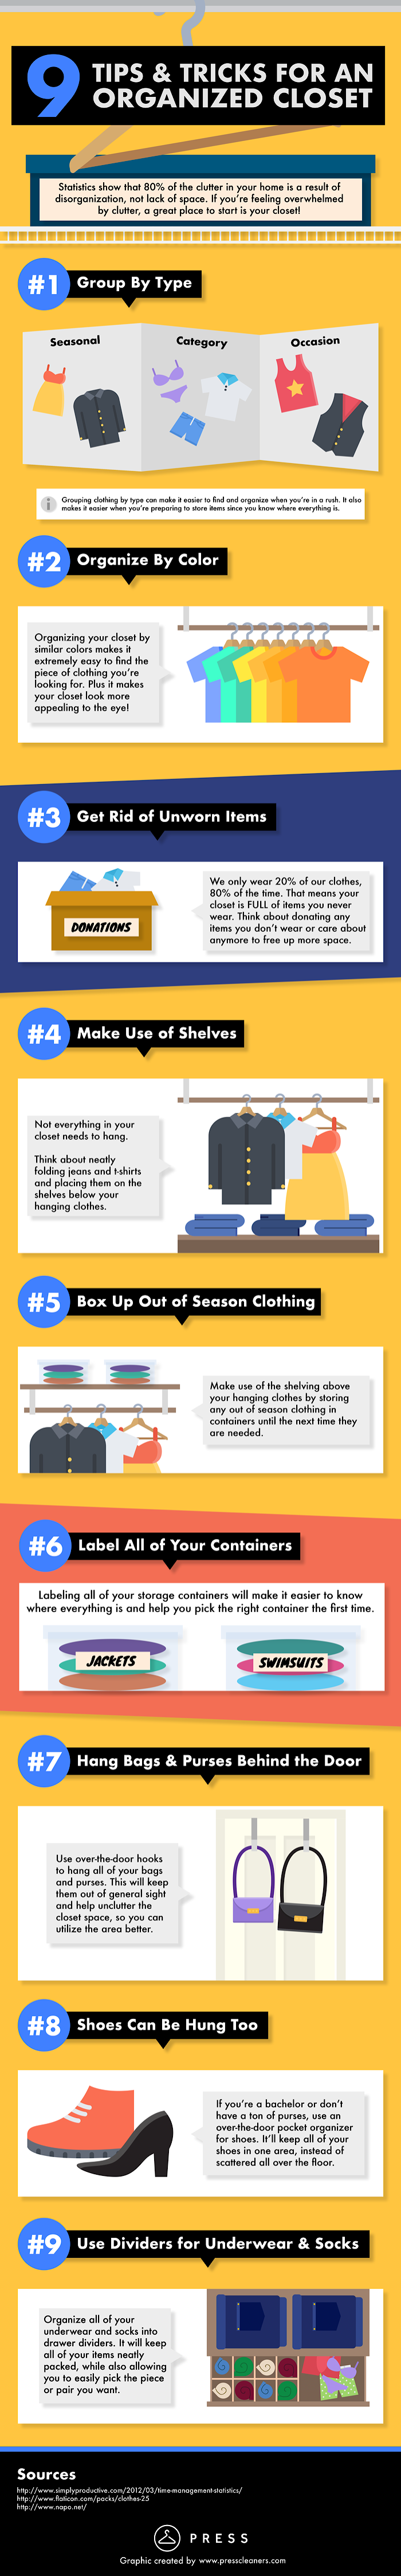 How to Organize Your Closet? - Infographic